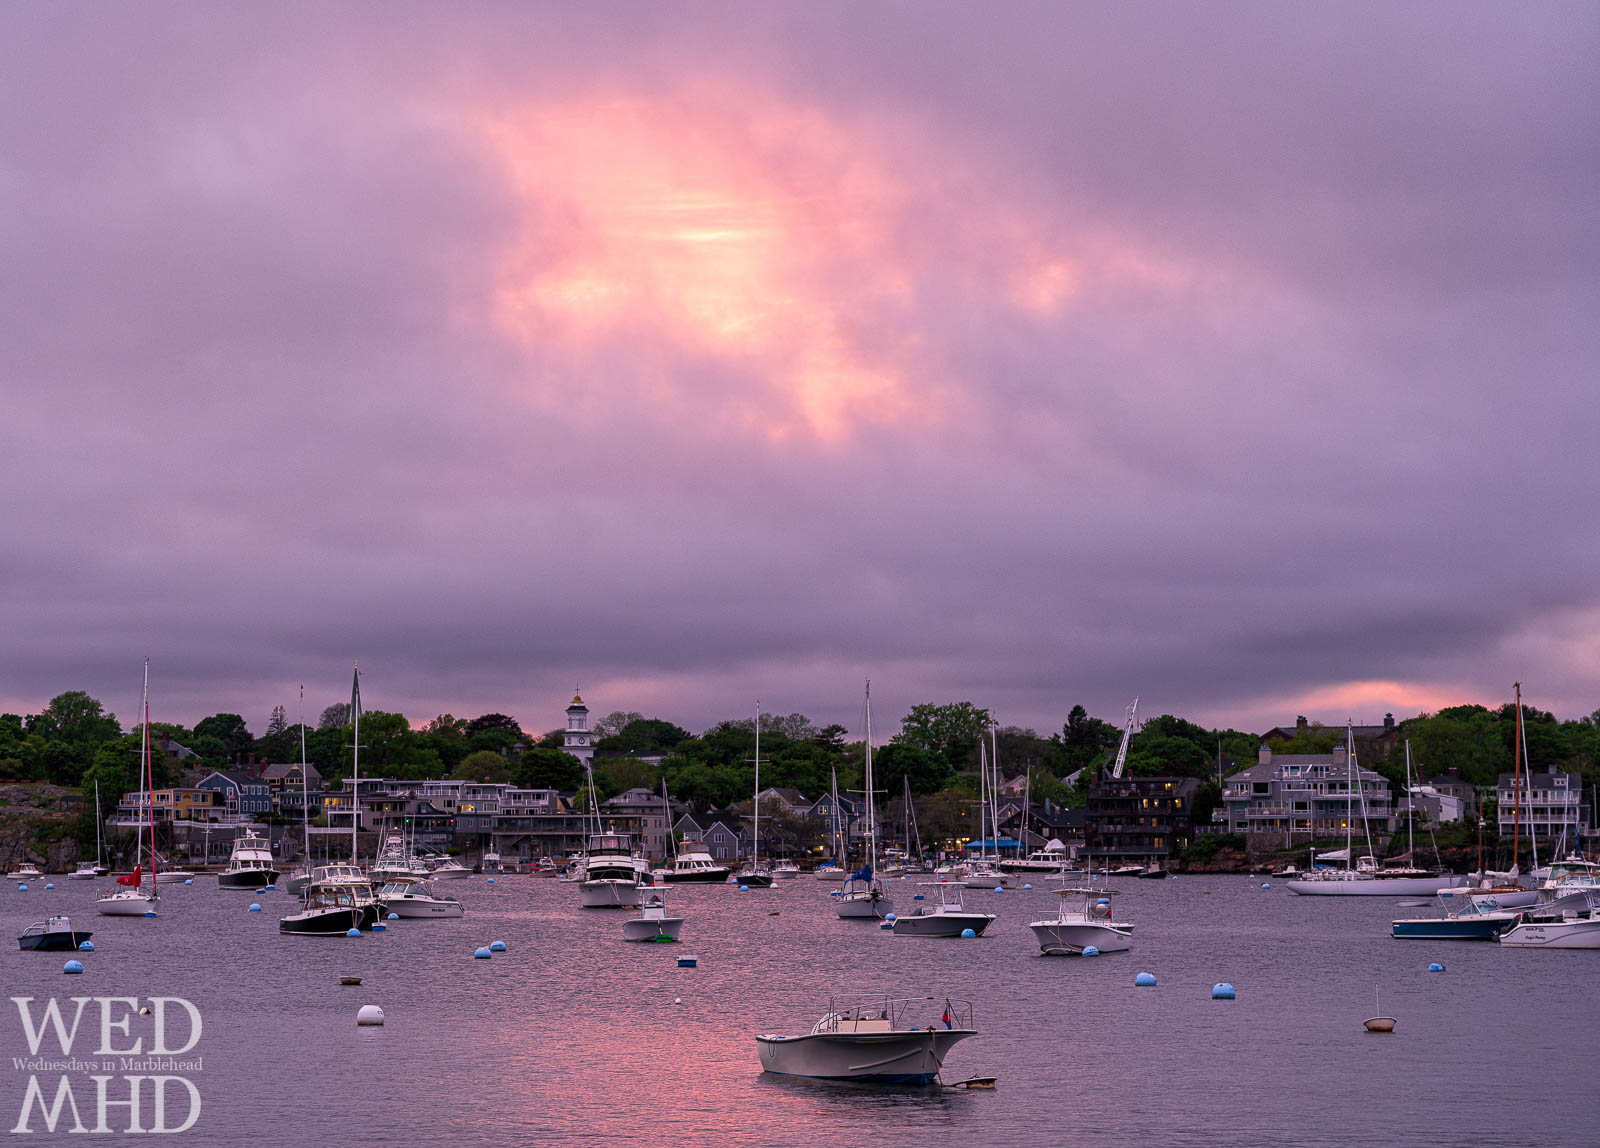 A boat is moored in the glow of an unusual sunset following a day of rain and grey clouds in Marblehead